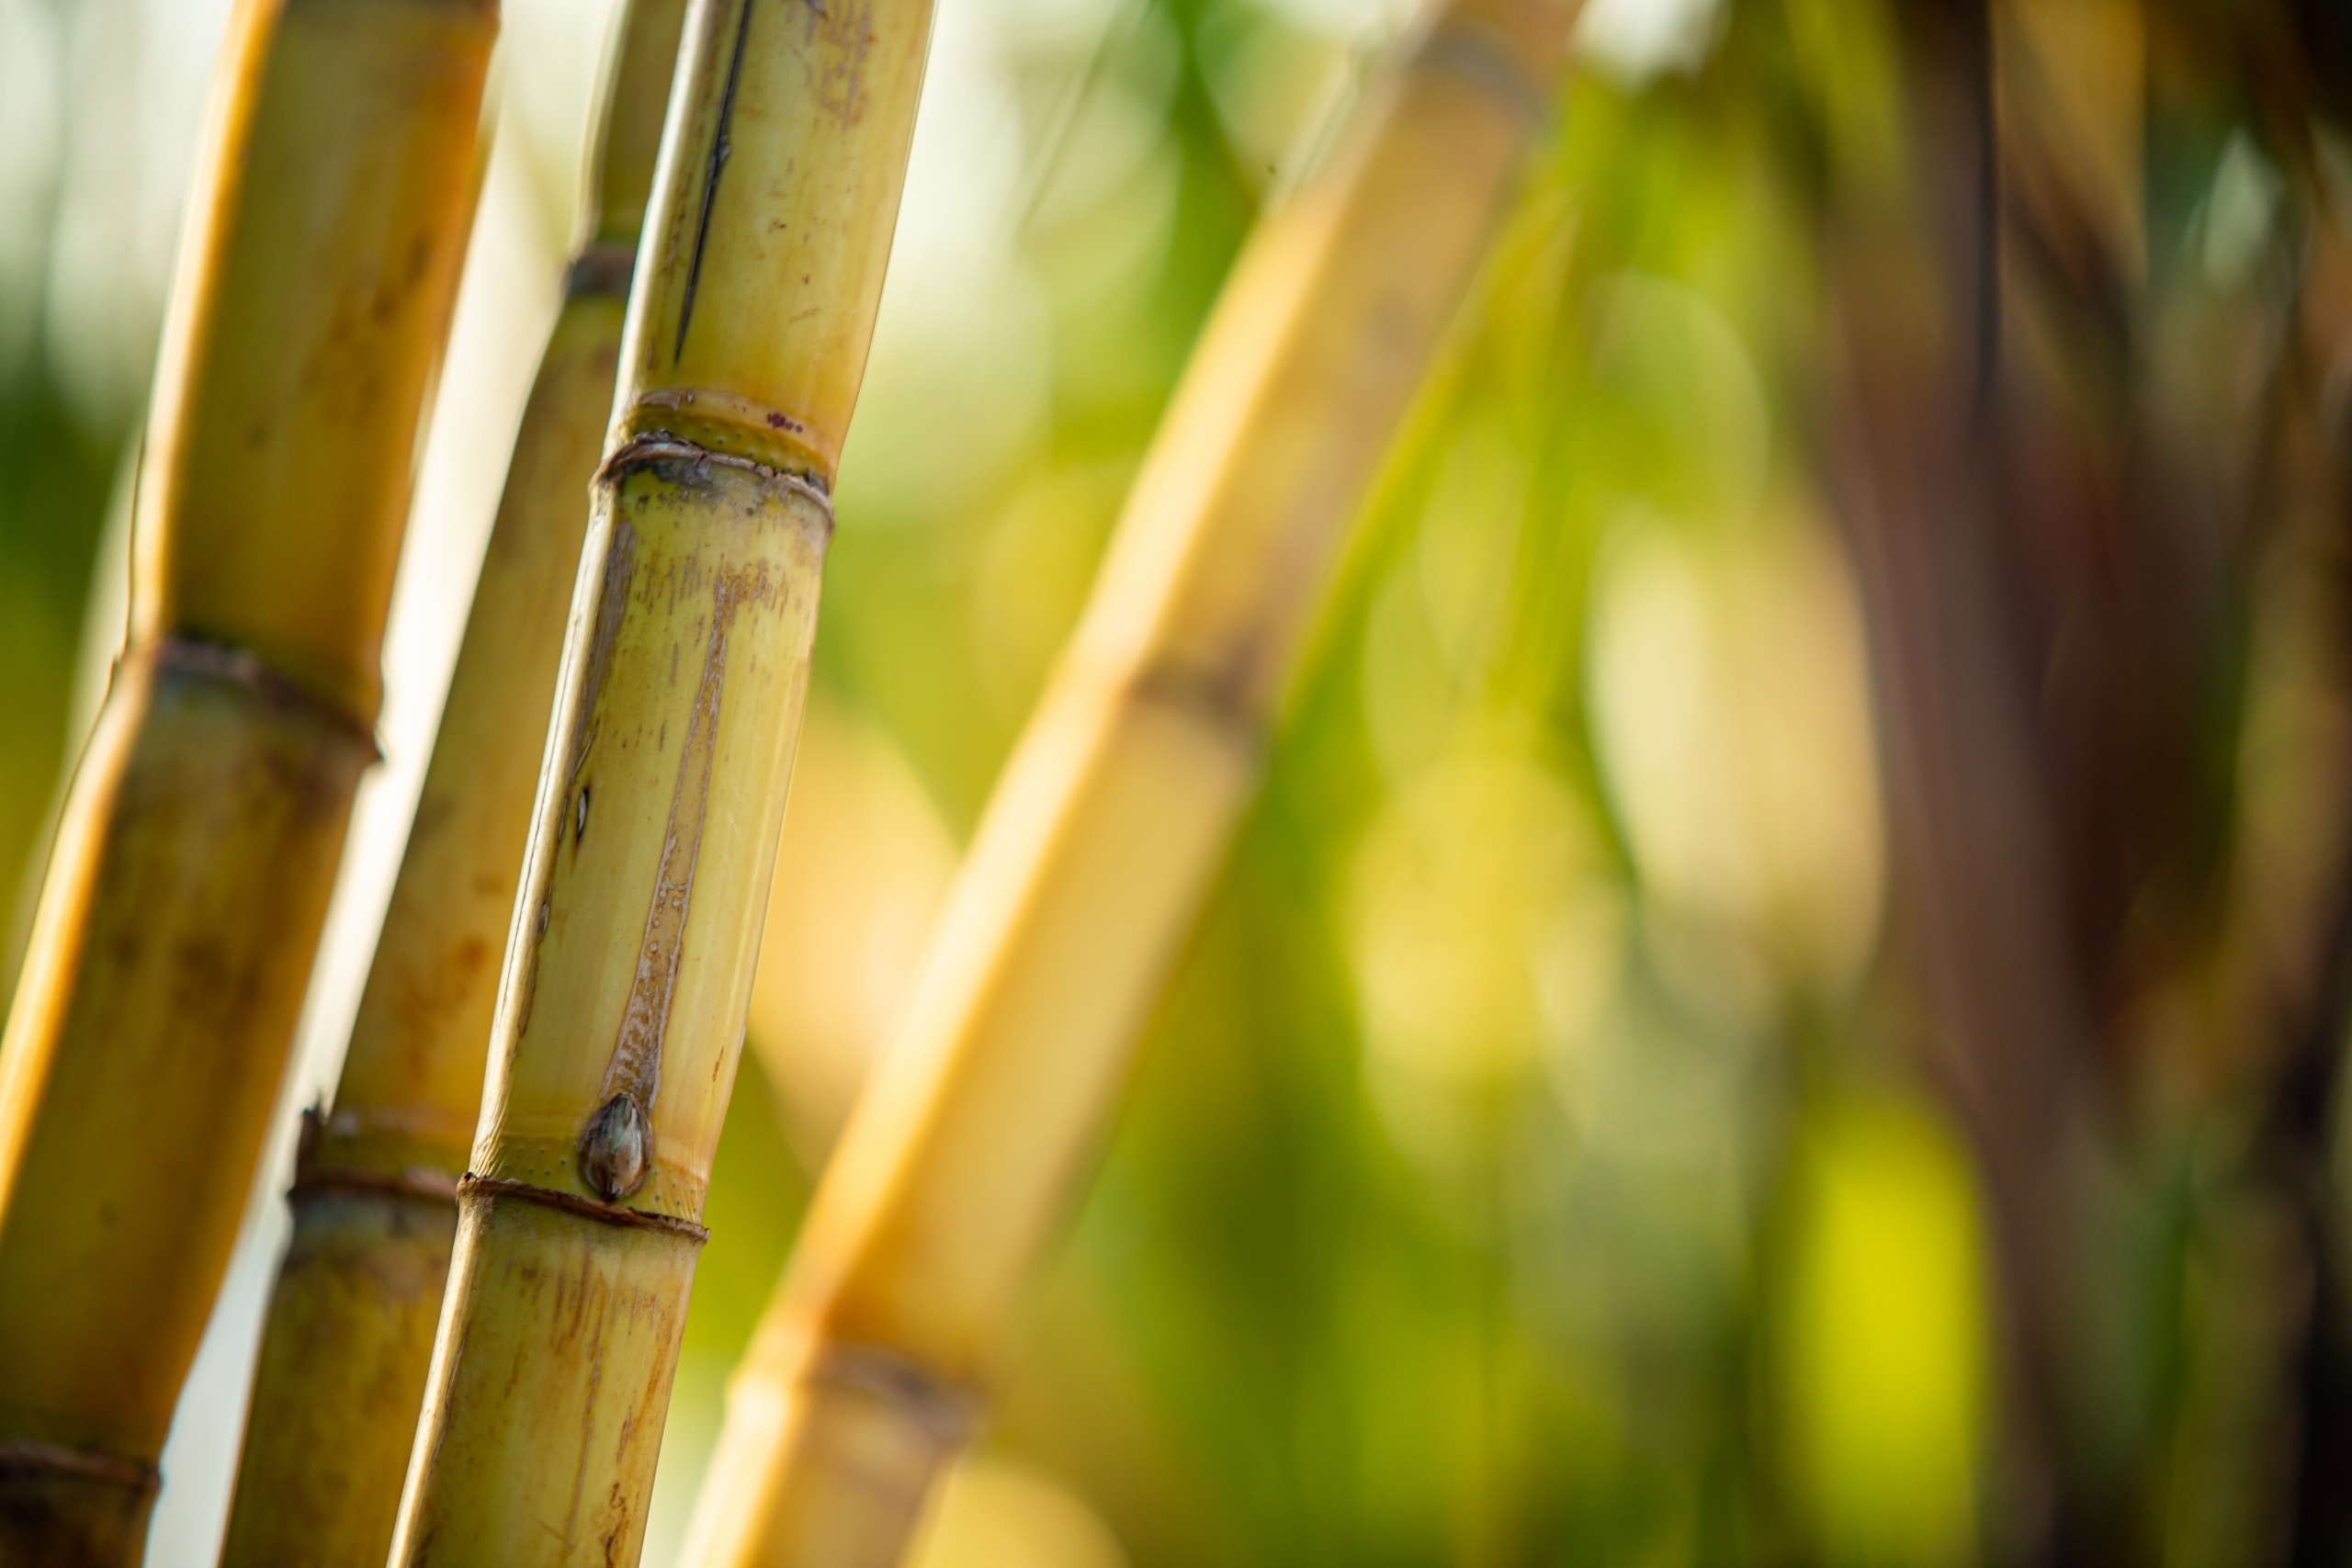 Sugarcane harvest for the second half of August 2020